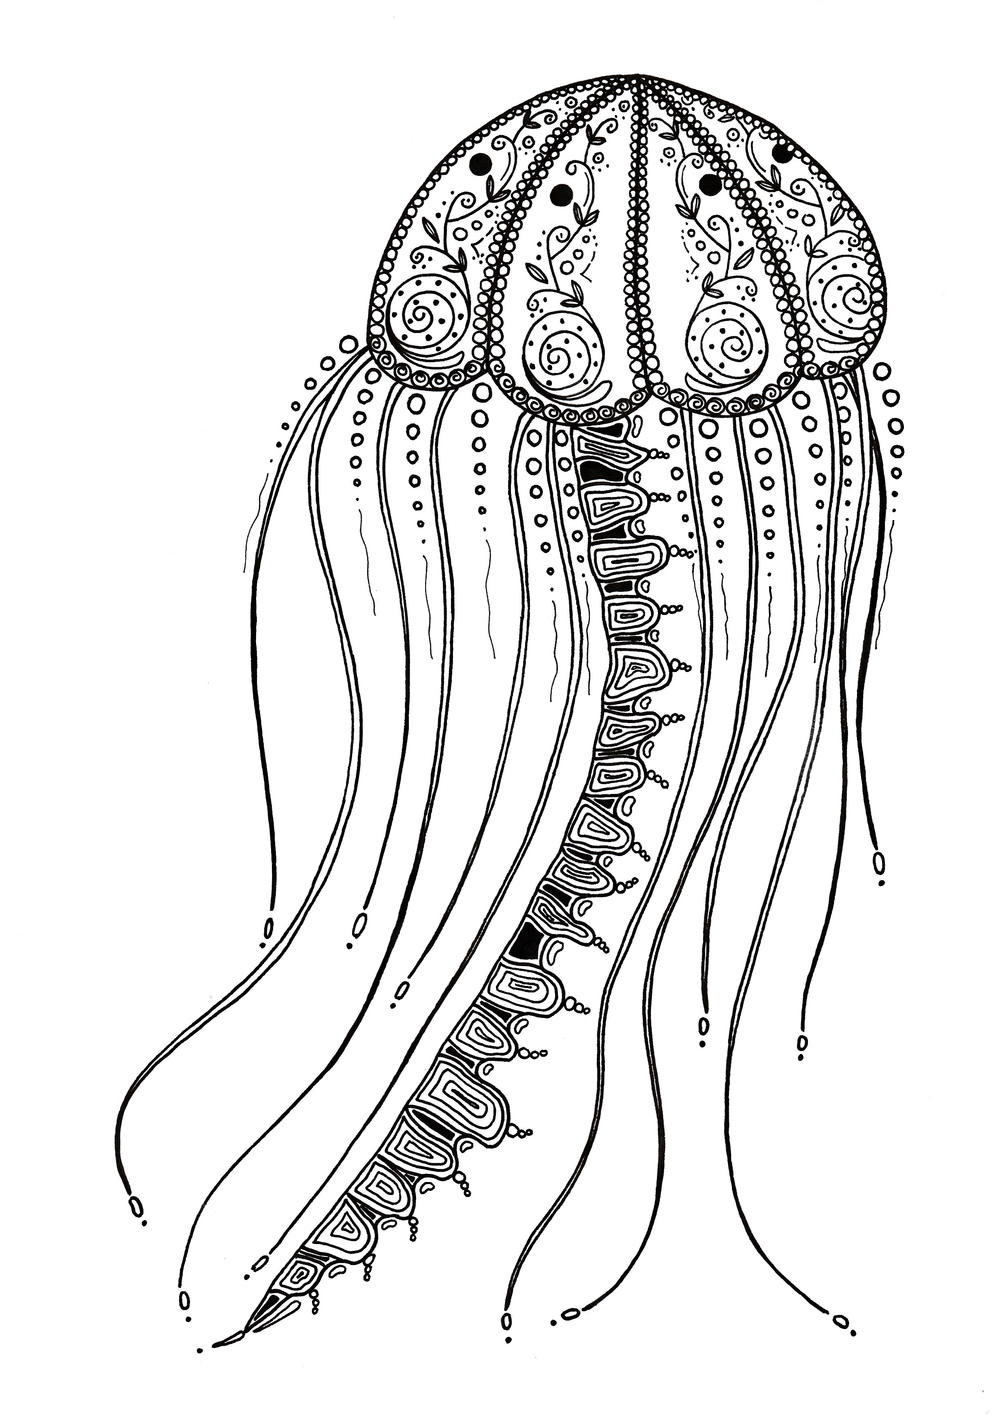 - Delicate Jellyfish Adult Coloring Page FaveCrafts.com